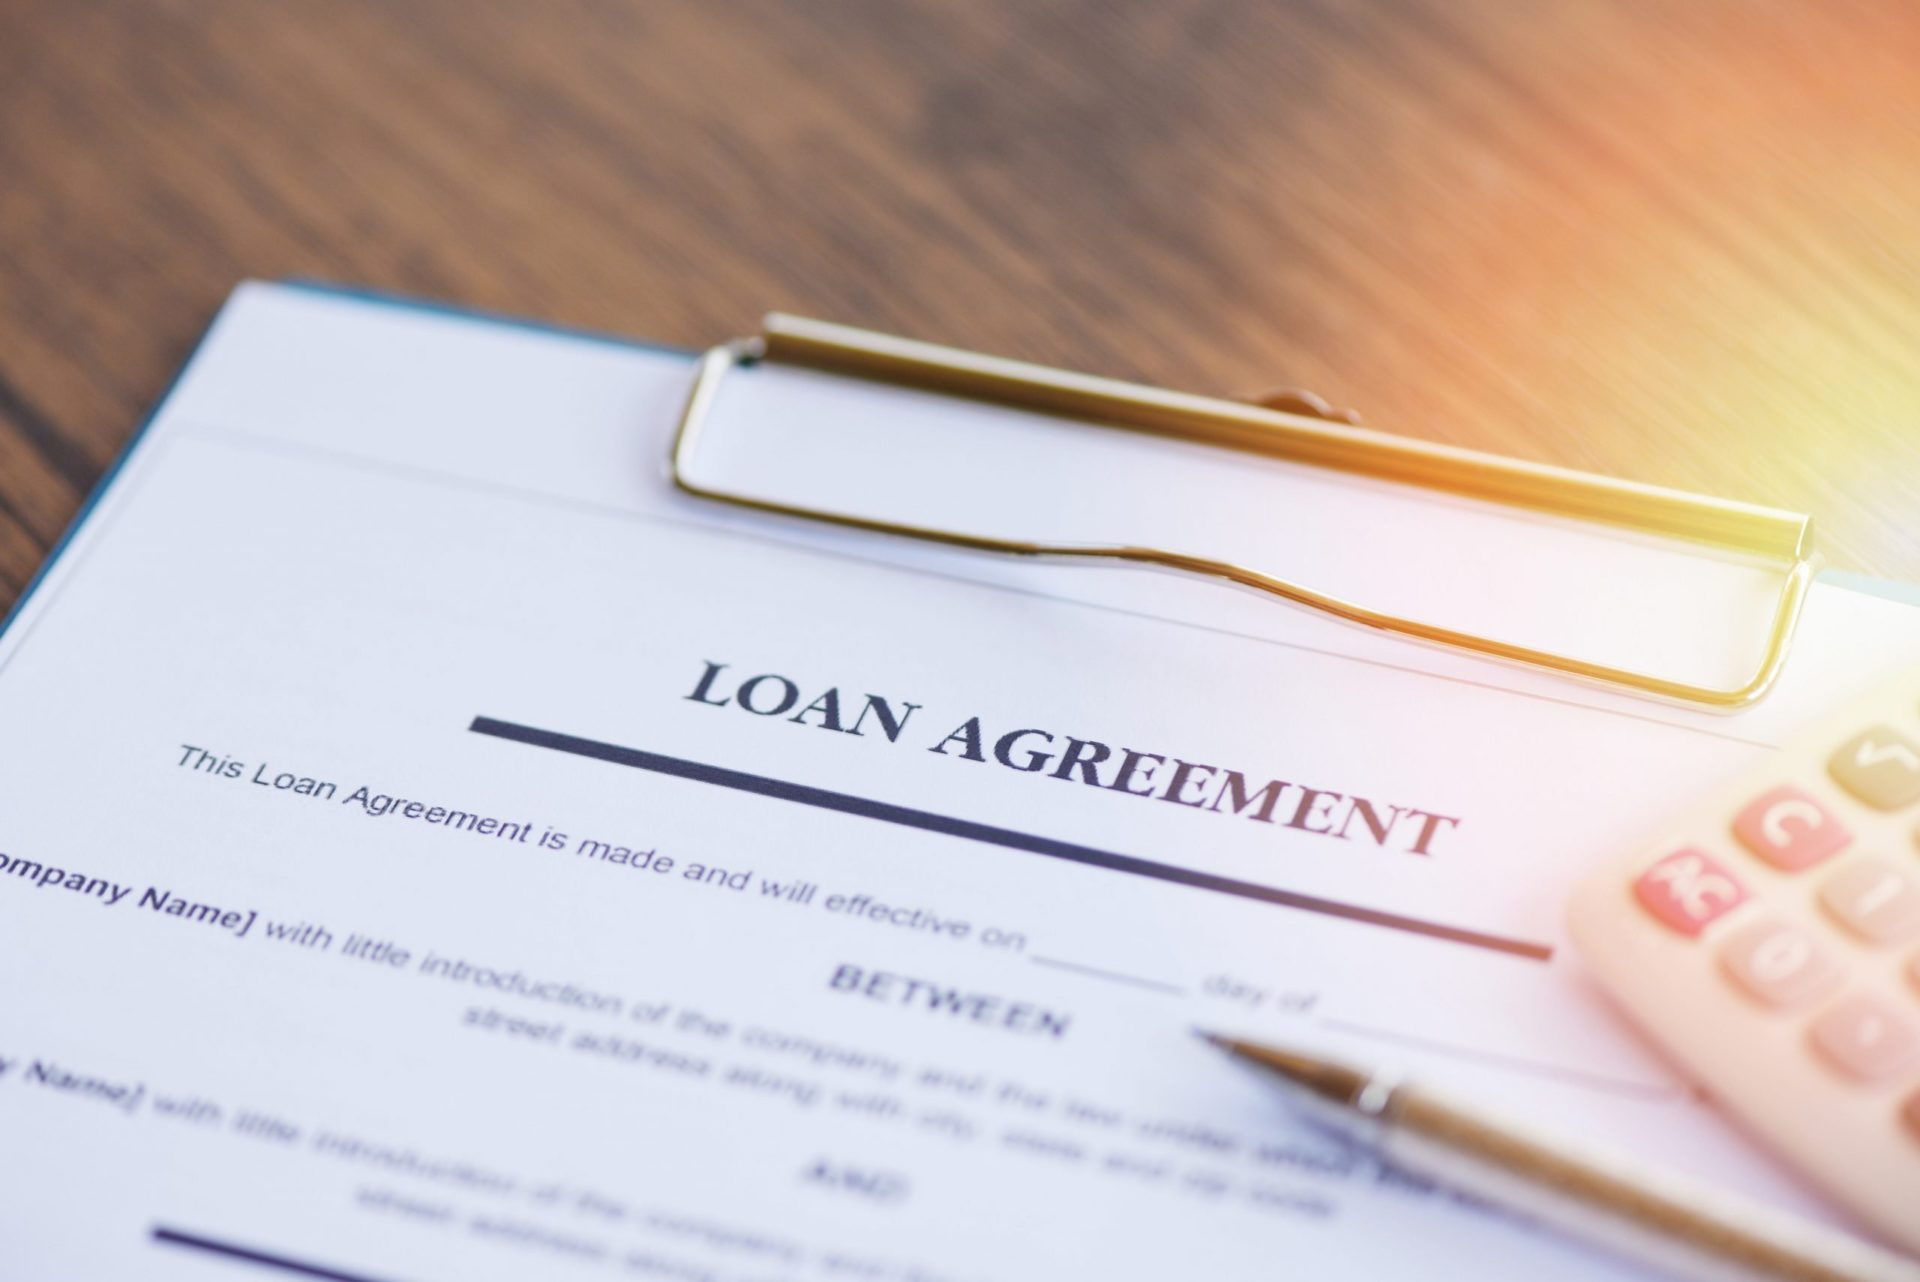 What Information Do I Need To Provide To Get A Loan?